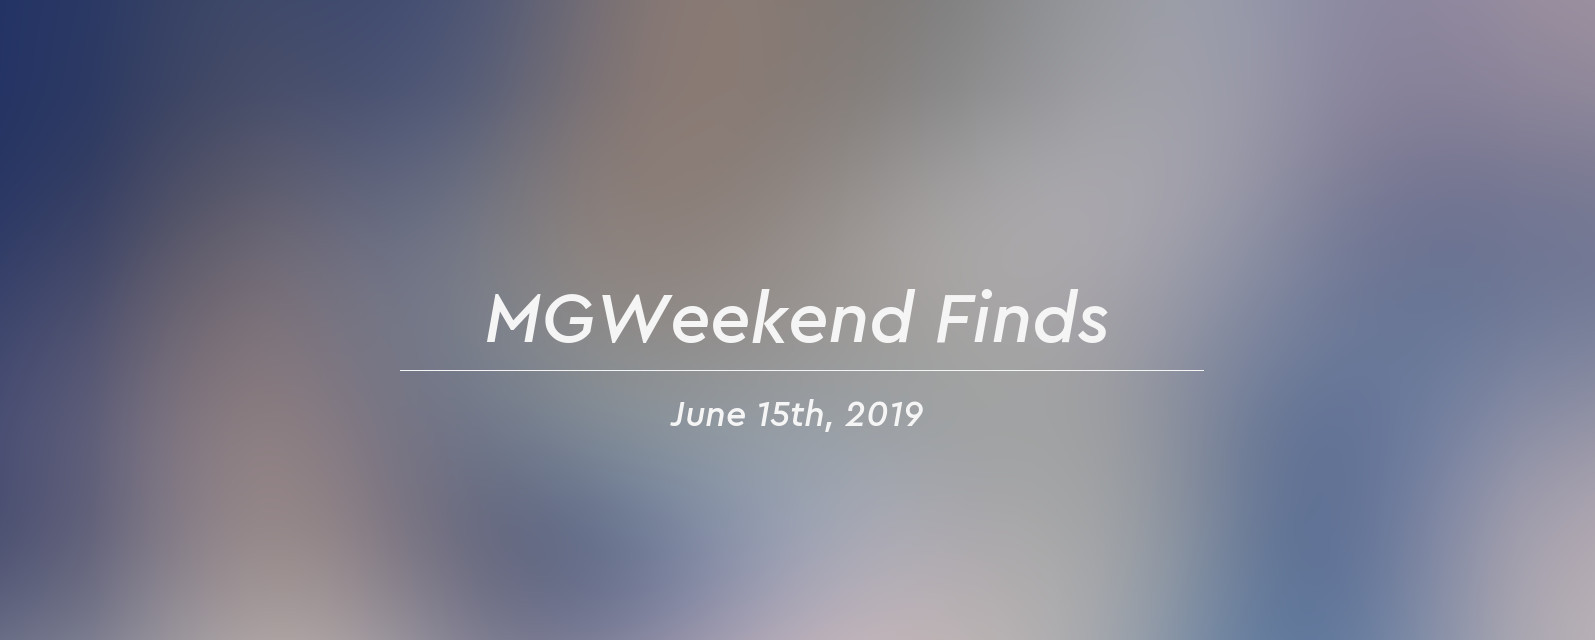 mgw finds 2019 06 15 header